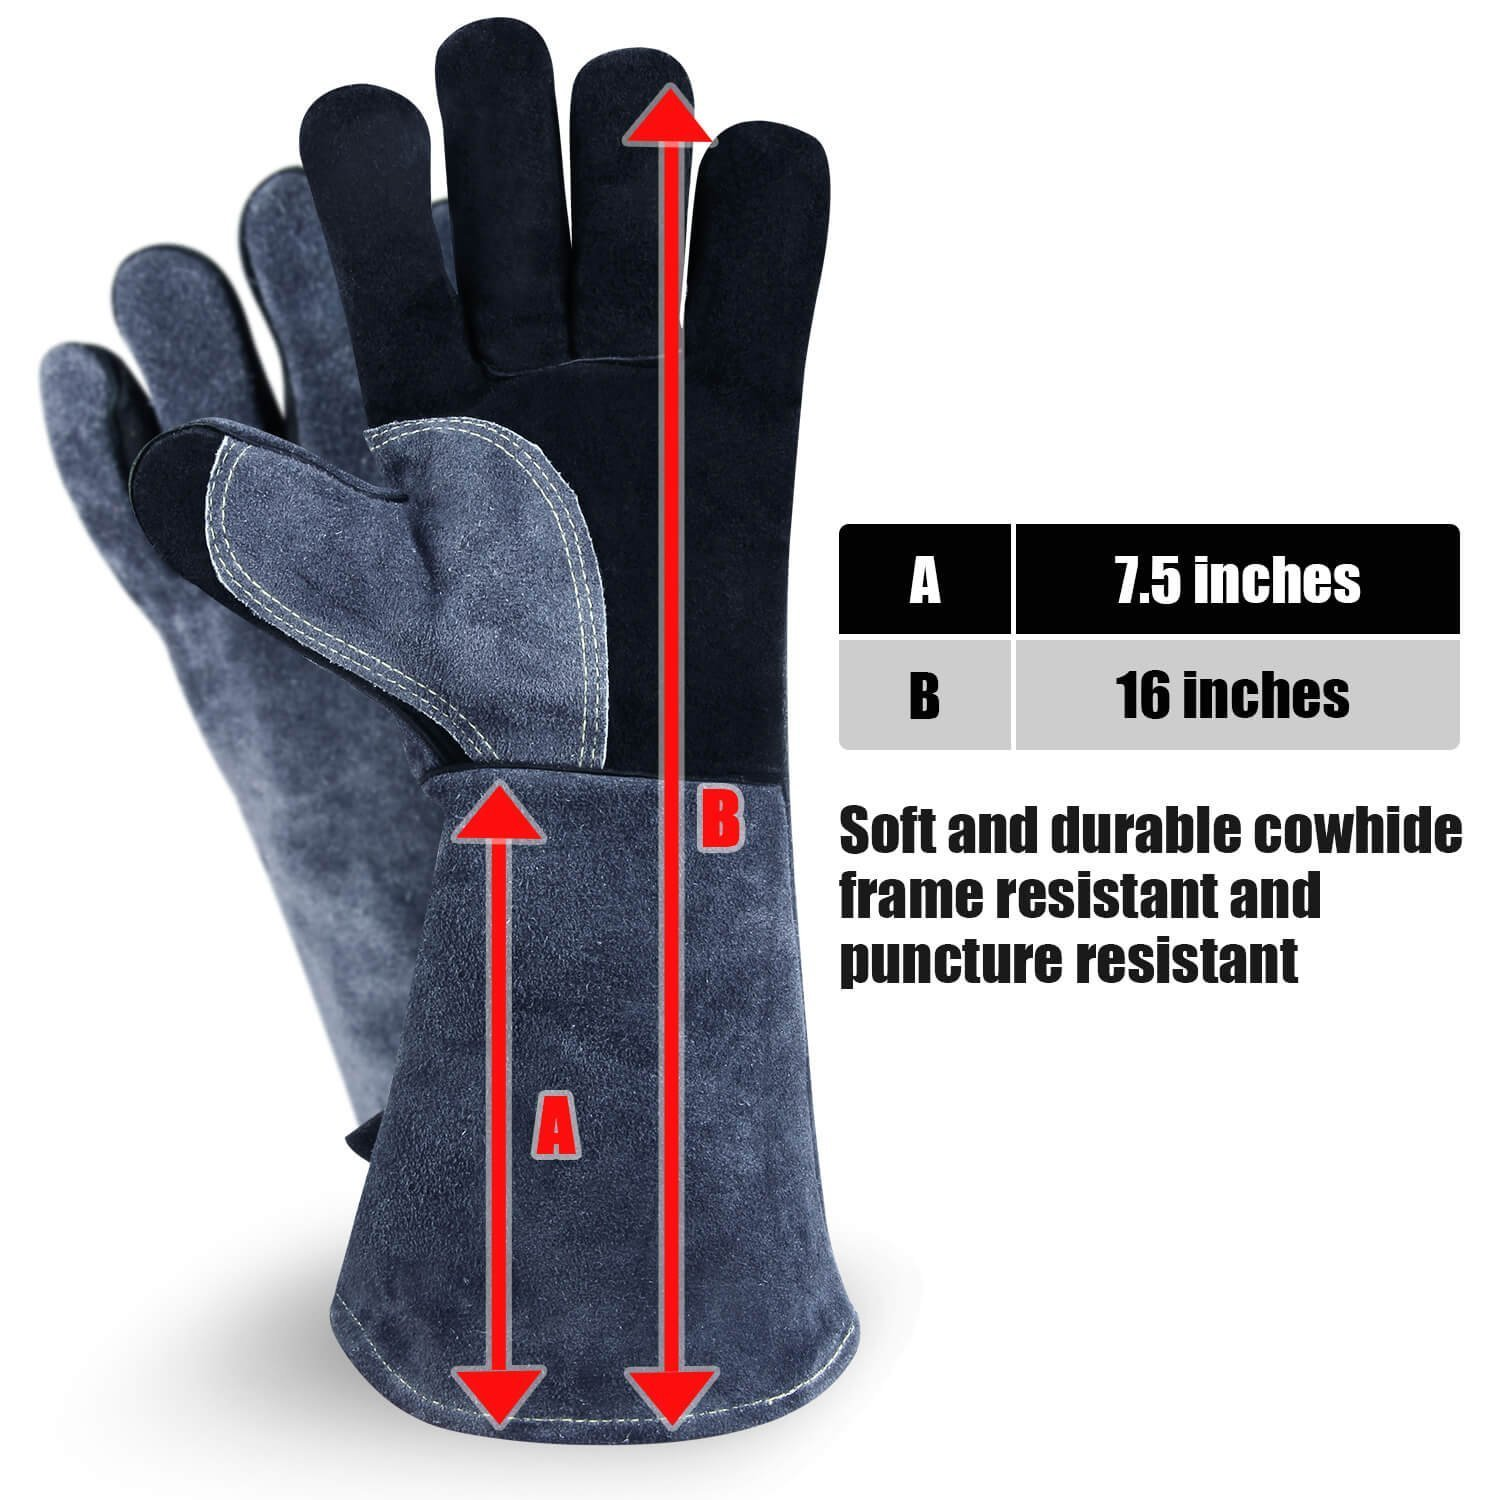 Chengyi Leather Welding BBQ 932°F Heat Resistant Gloves Lab, Safety and Work Gloves for Tig Welder/Grilling/Barbecue/Gardening by ChengYi (Image #3)